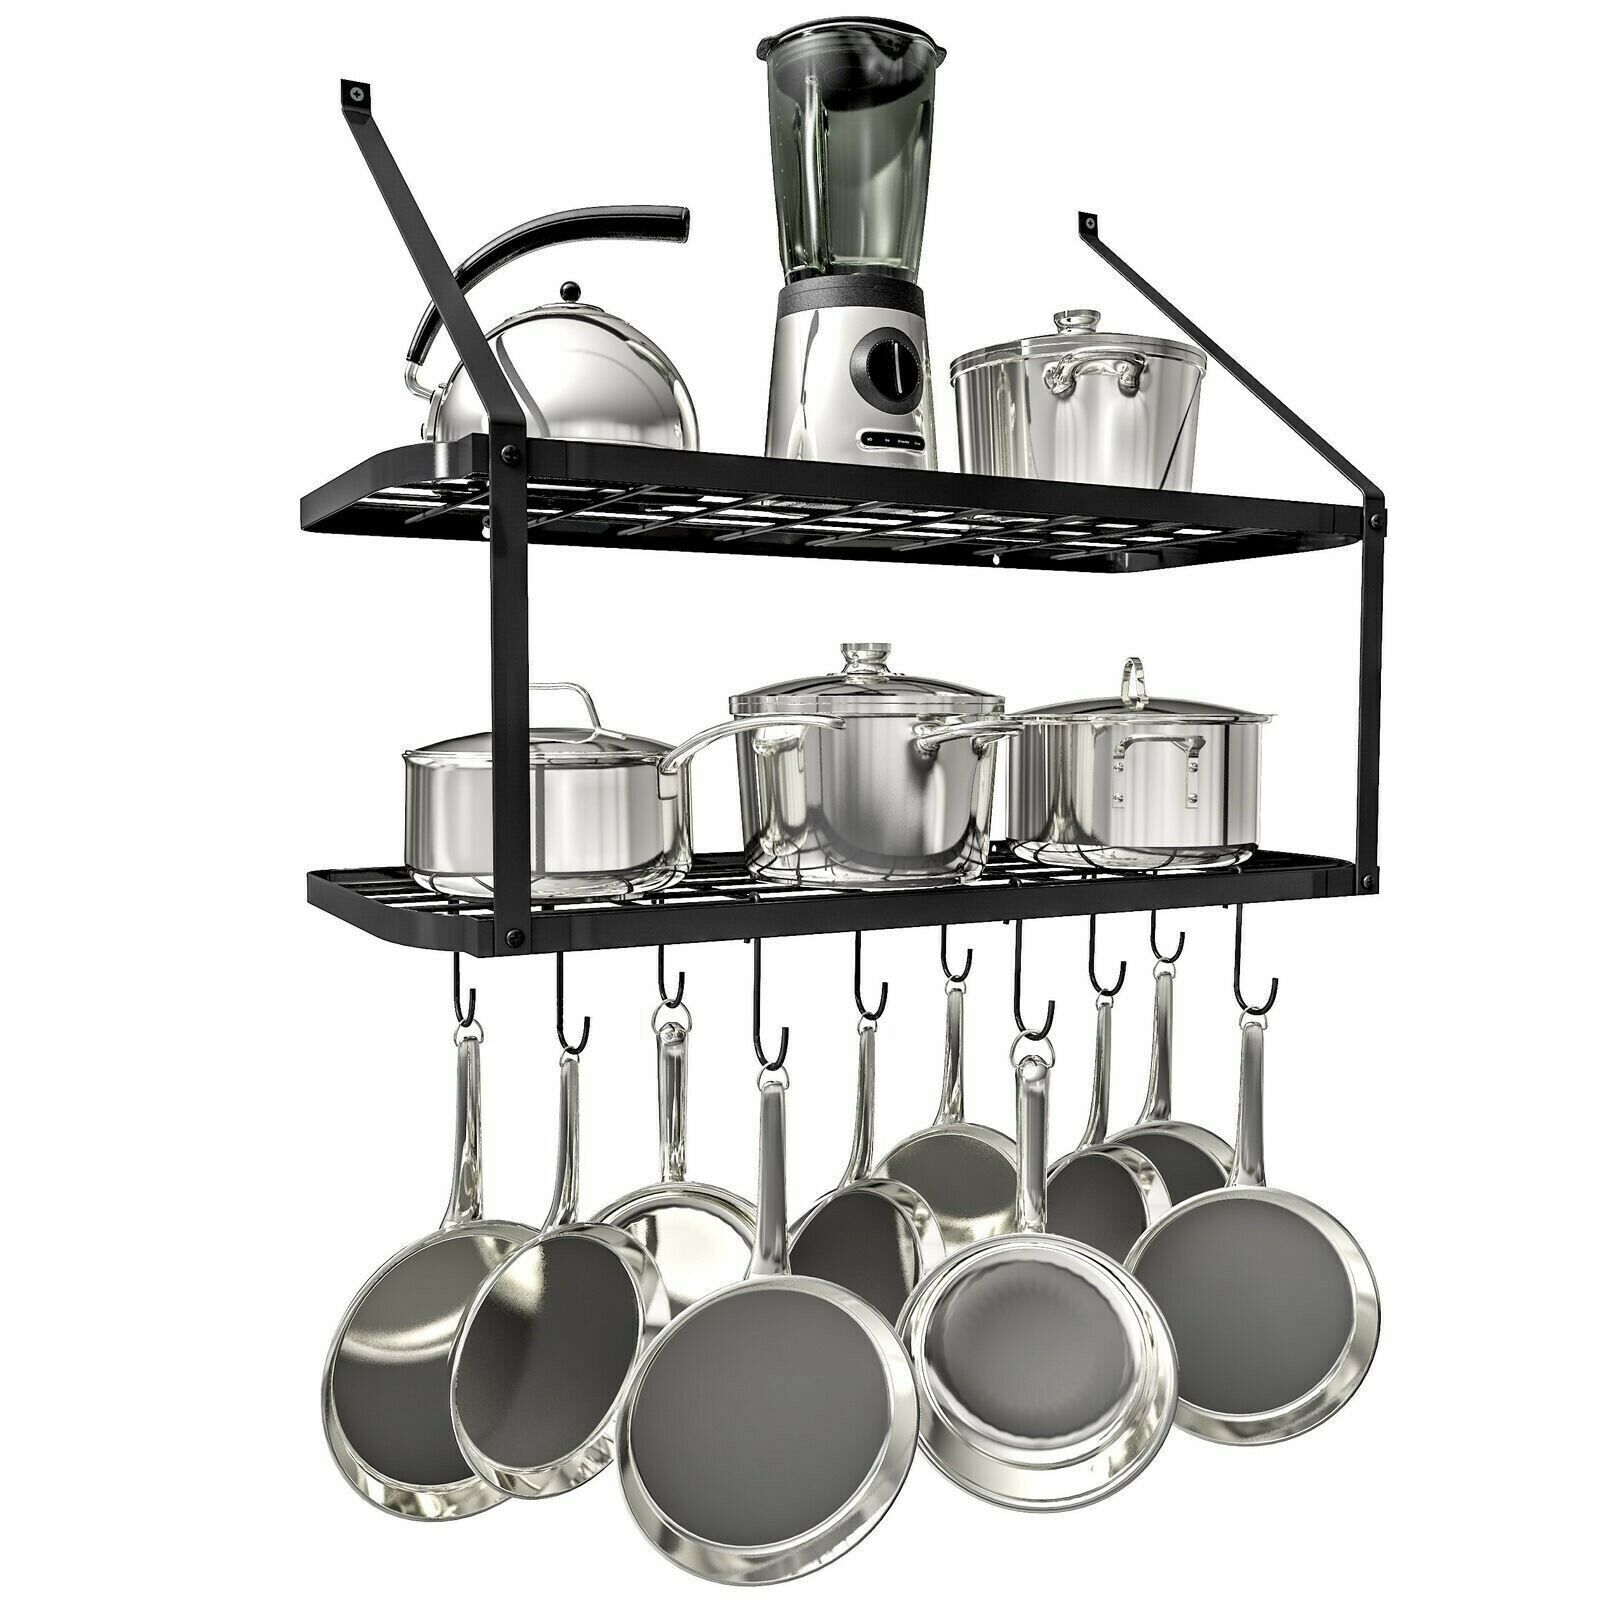 2 Tire Shelf Pot Rack Wall Mounted Pan Hanging Racks With 10 Hooks Black Pot Racks Ideas Of Pot Racks Pot Racks Pot Rack Hanging Pot Rack Hanging Pots